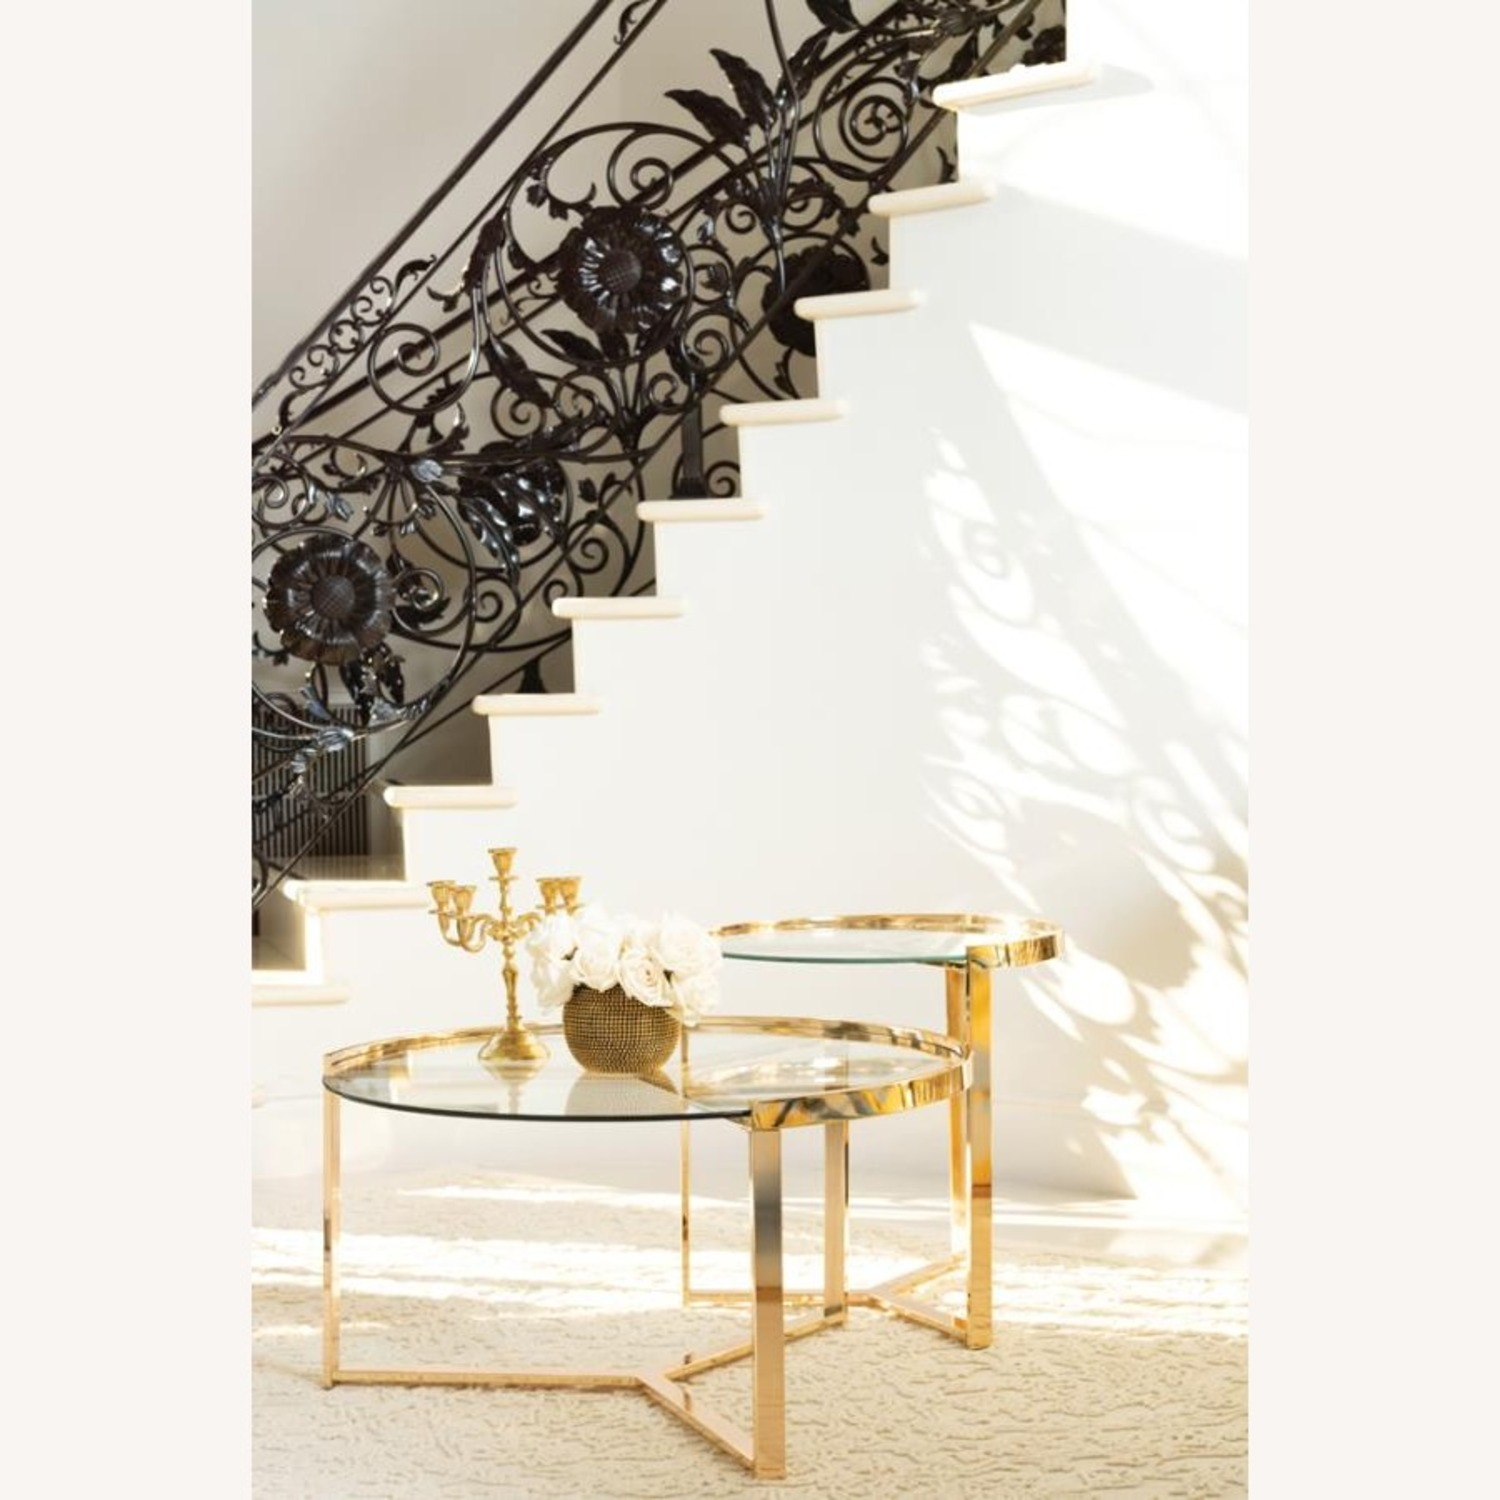 Nesting Table In Gold Finish W/ Tempered Glass - image-2